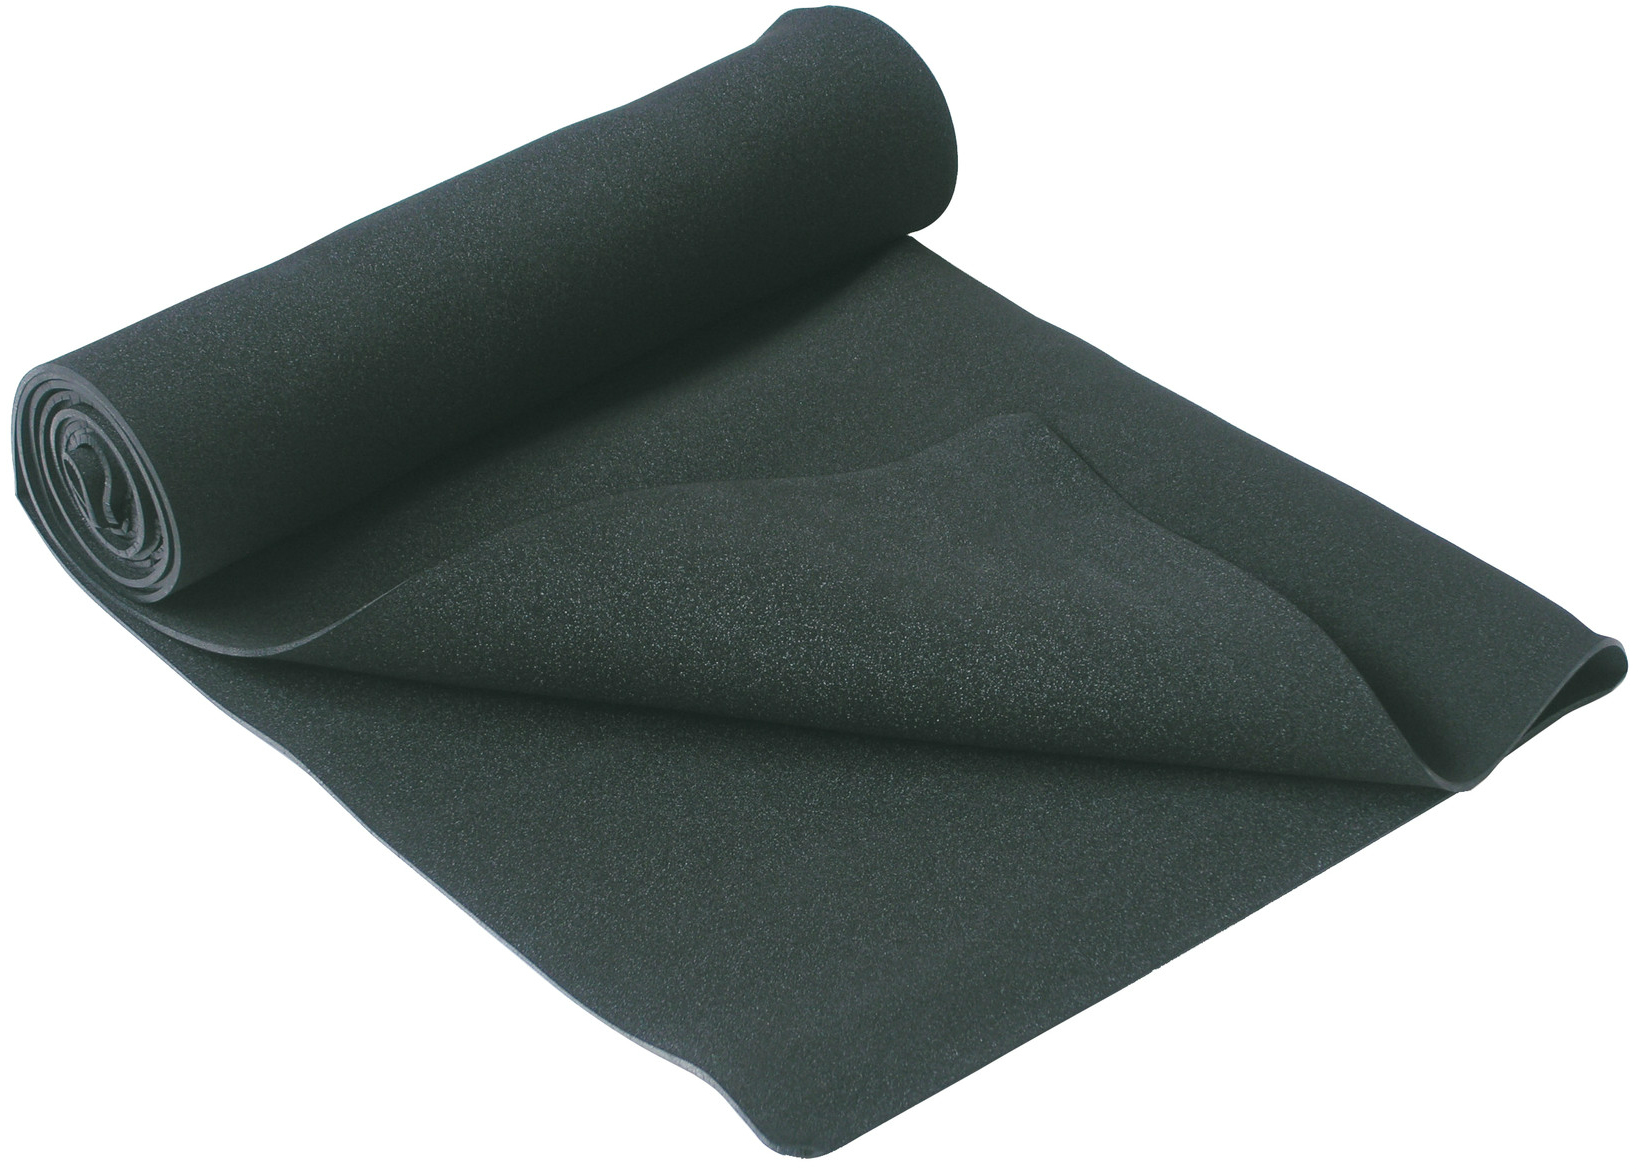 Closed Cell Foam Mat Exped Doublemat Evazote Sleeping Pad